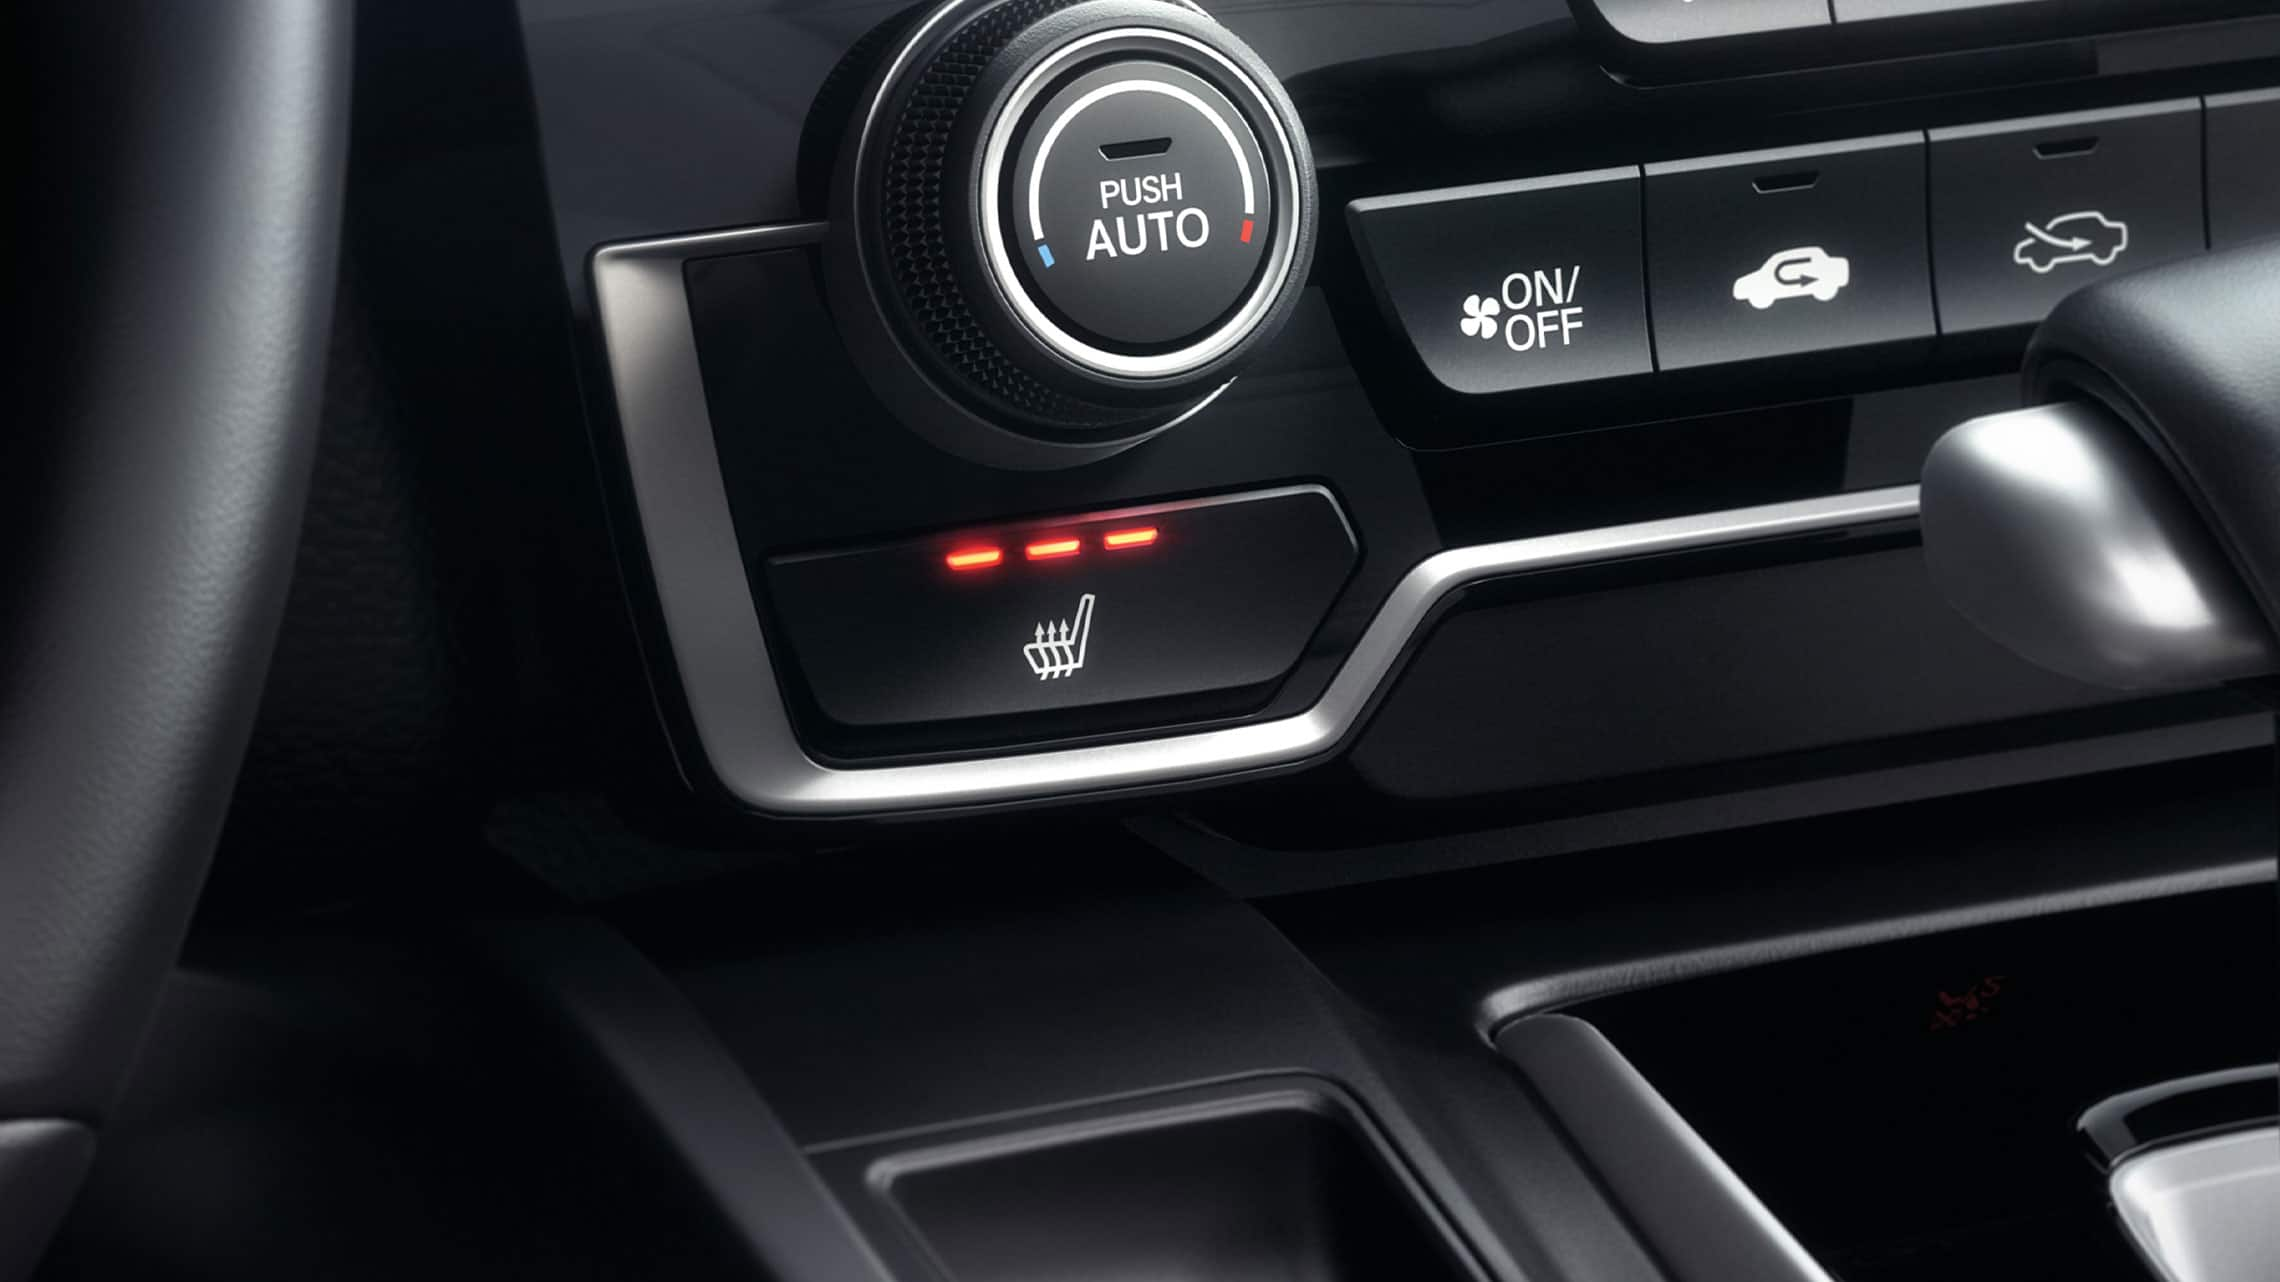 Heated front seat controls detail in the 2020 Honda CR-V interior.